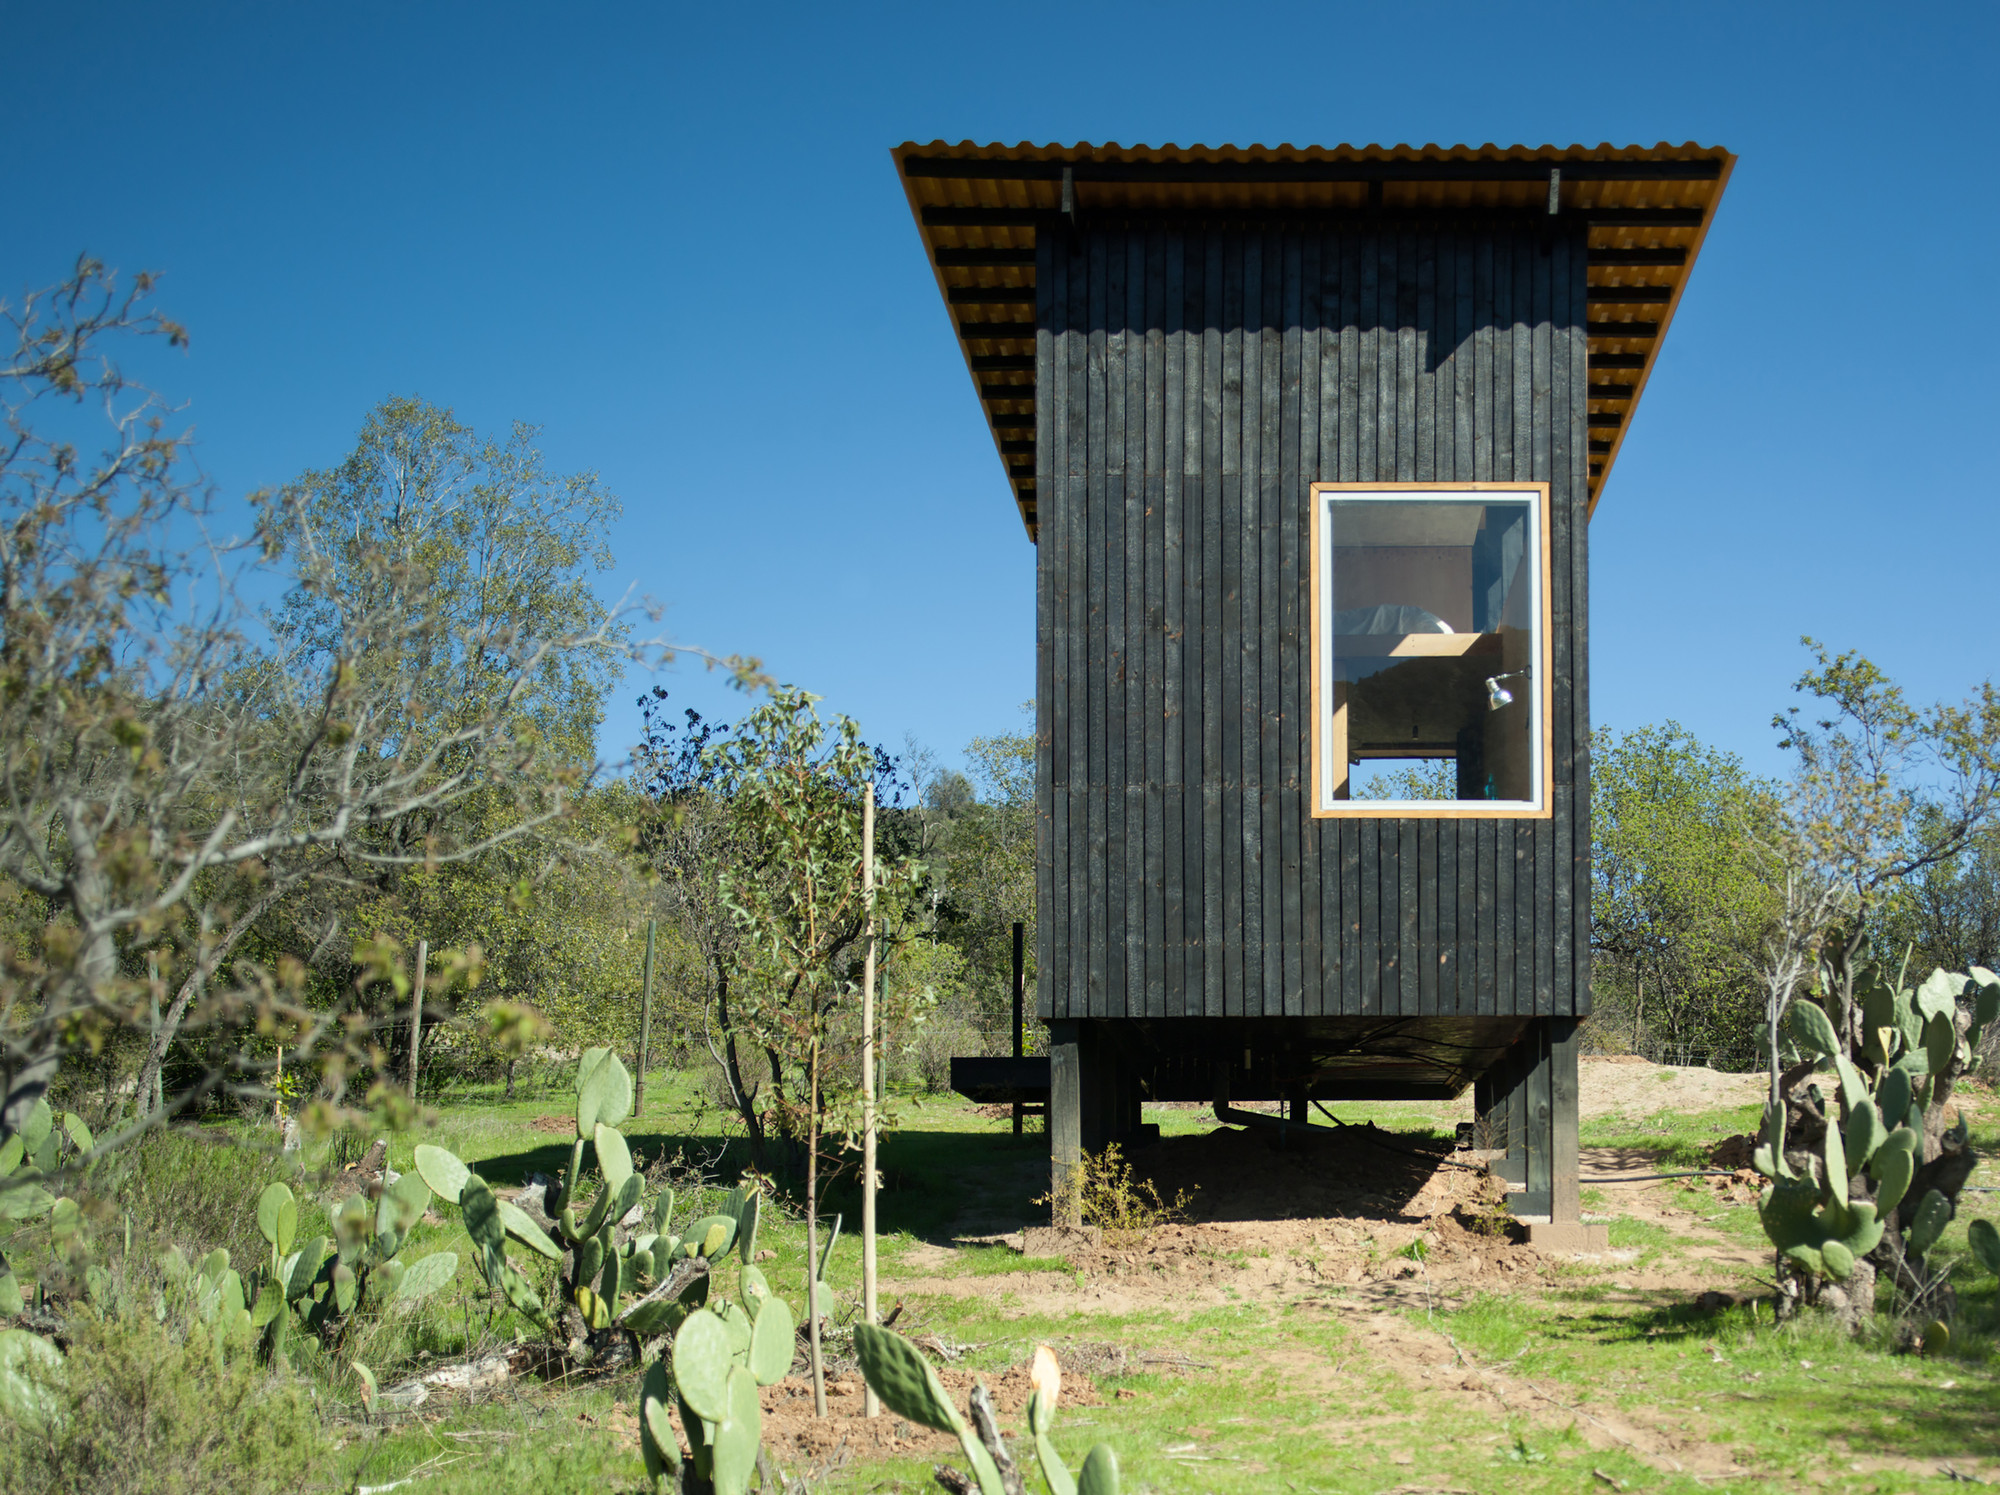 Charred Cabin / DRAA, Courtesy of Felipe Camus